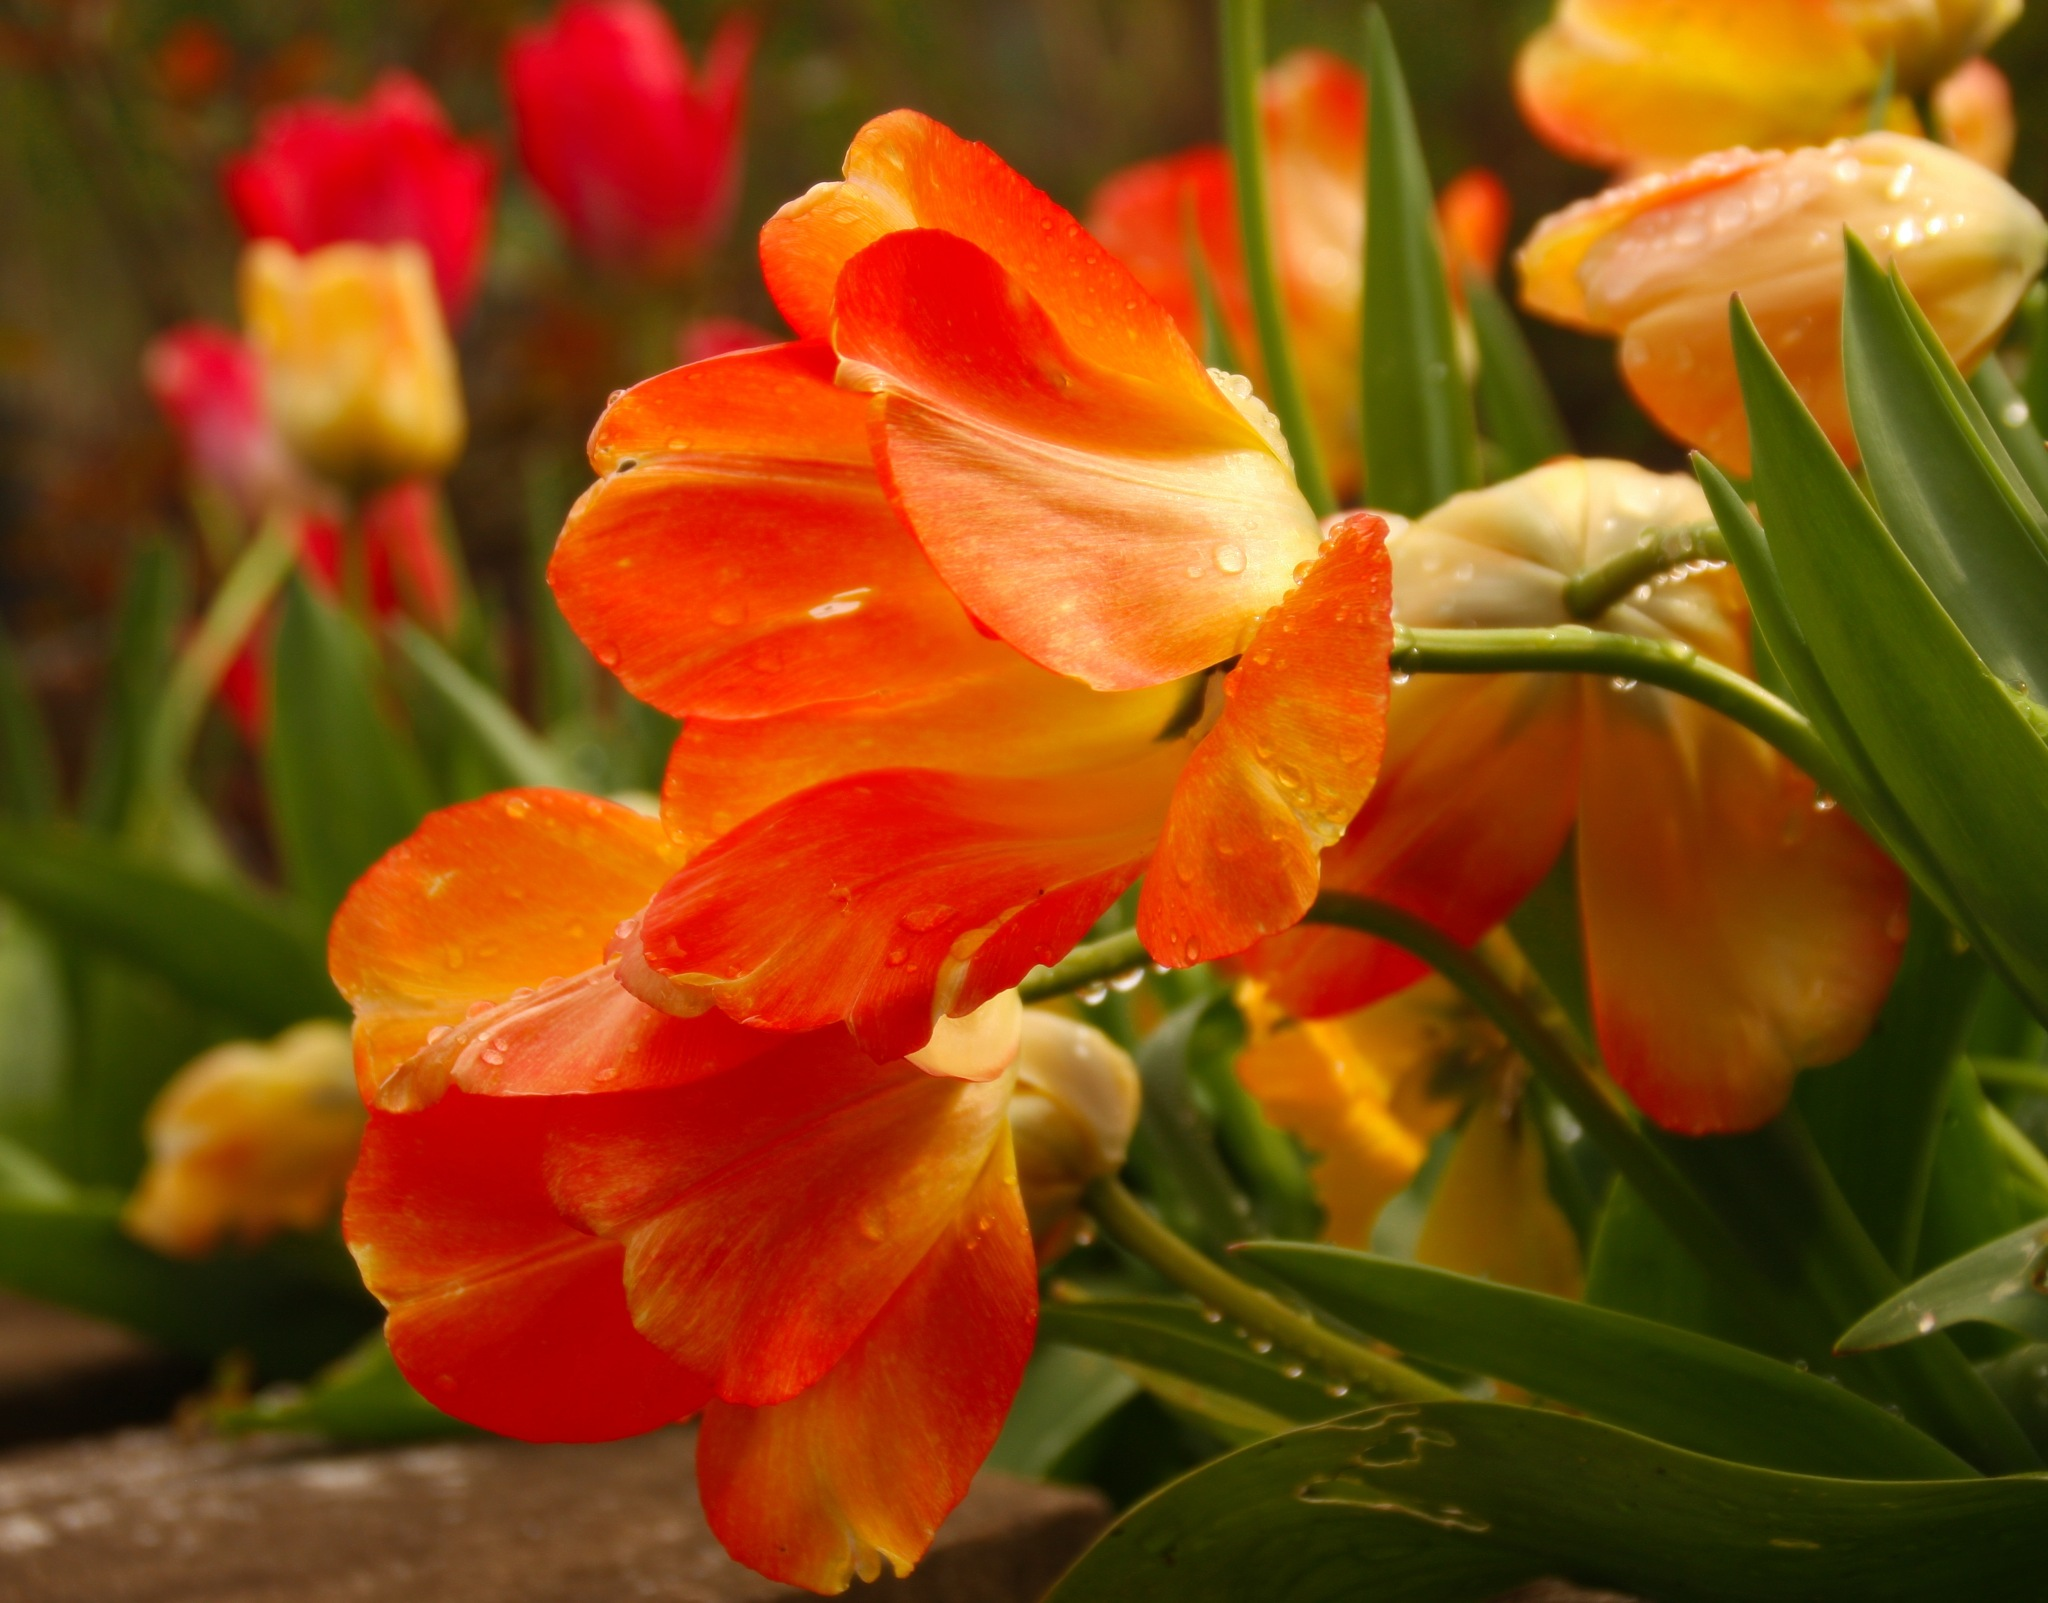 Orange Tulips after the rain by RenfroPhotography